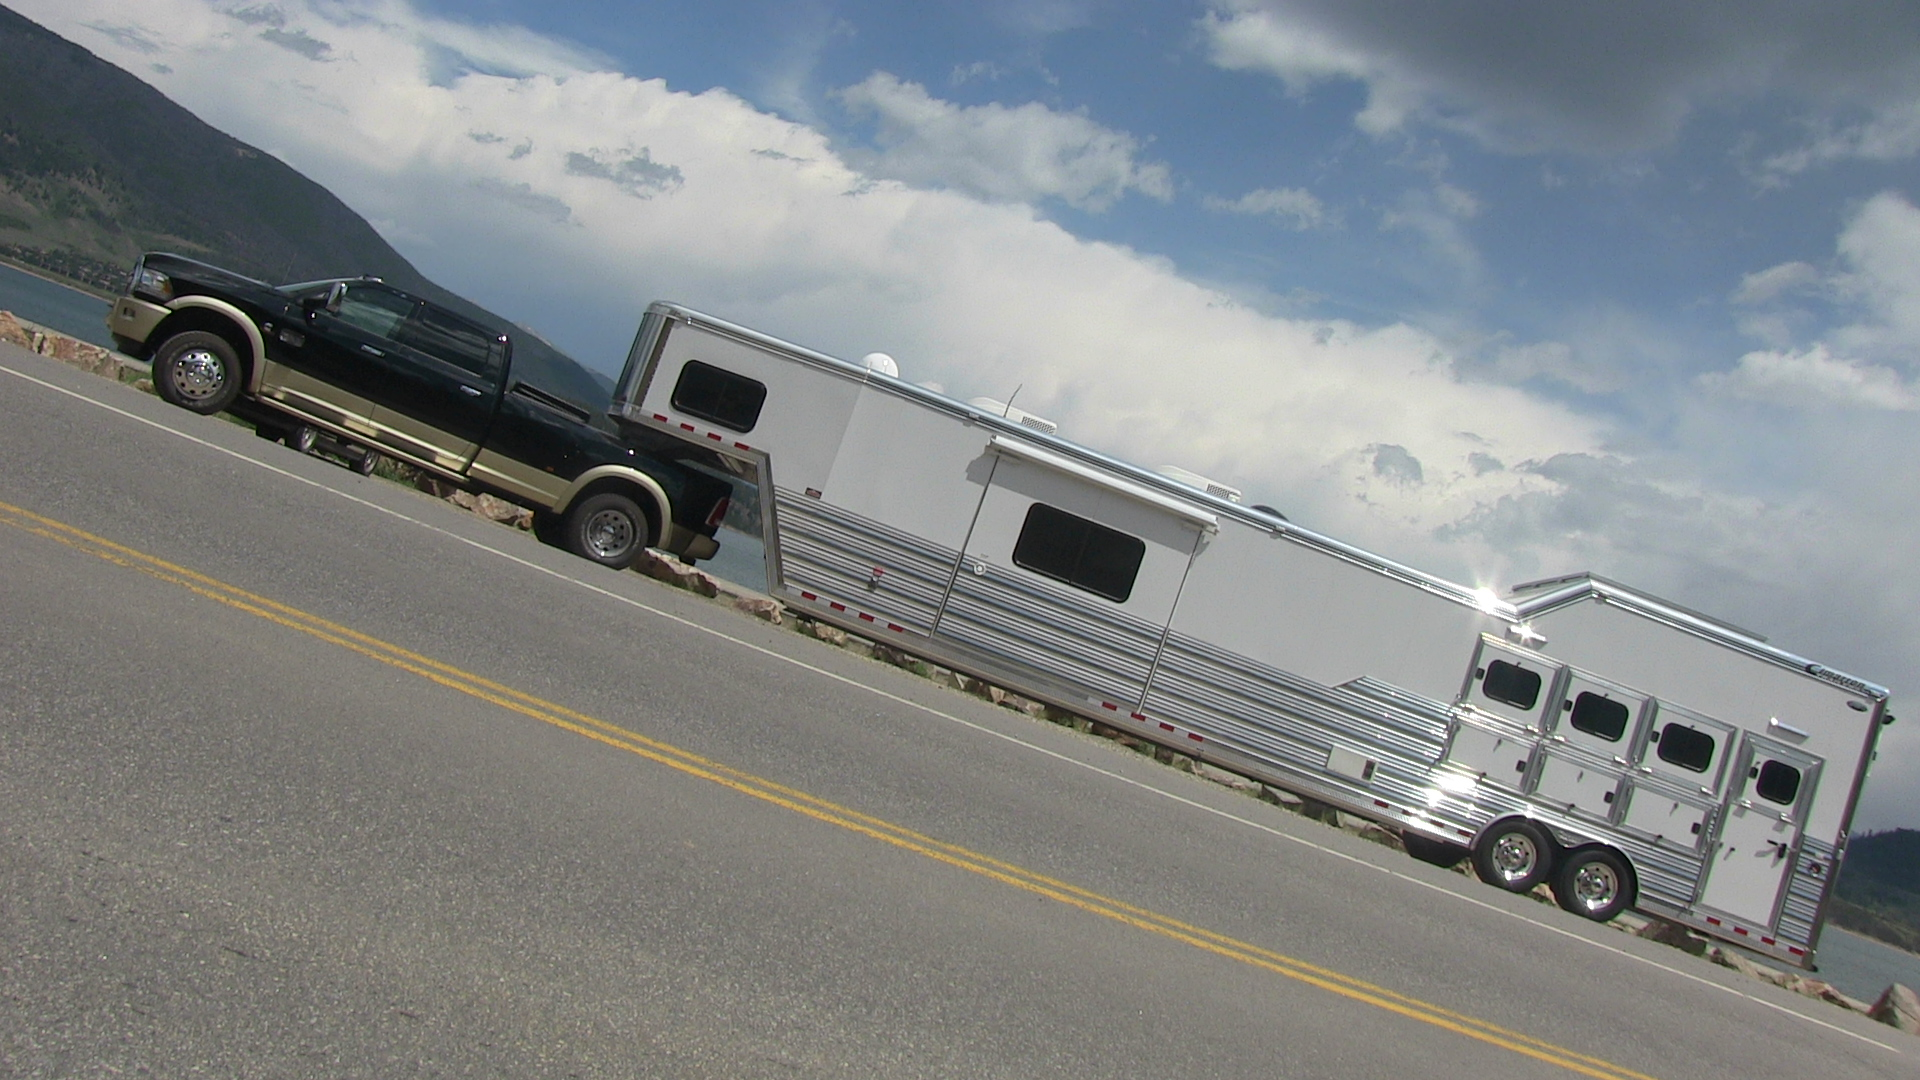 hight resolution of 2013 ram 3500 heavy duty pickup takes on the ike gauntlet towing test